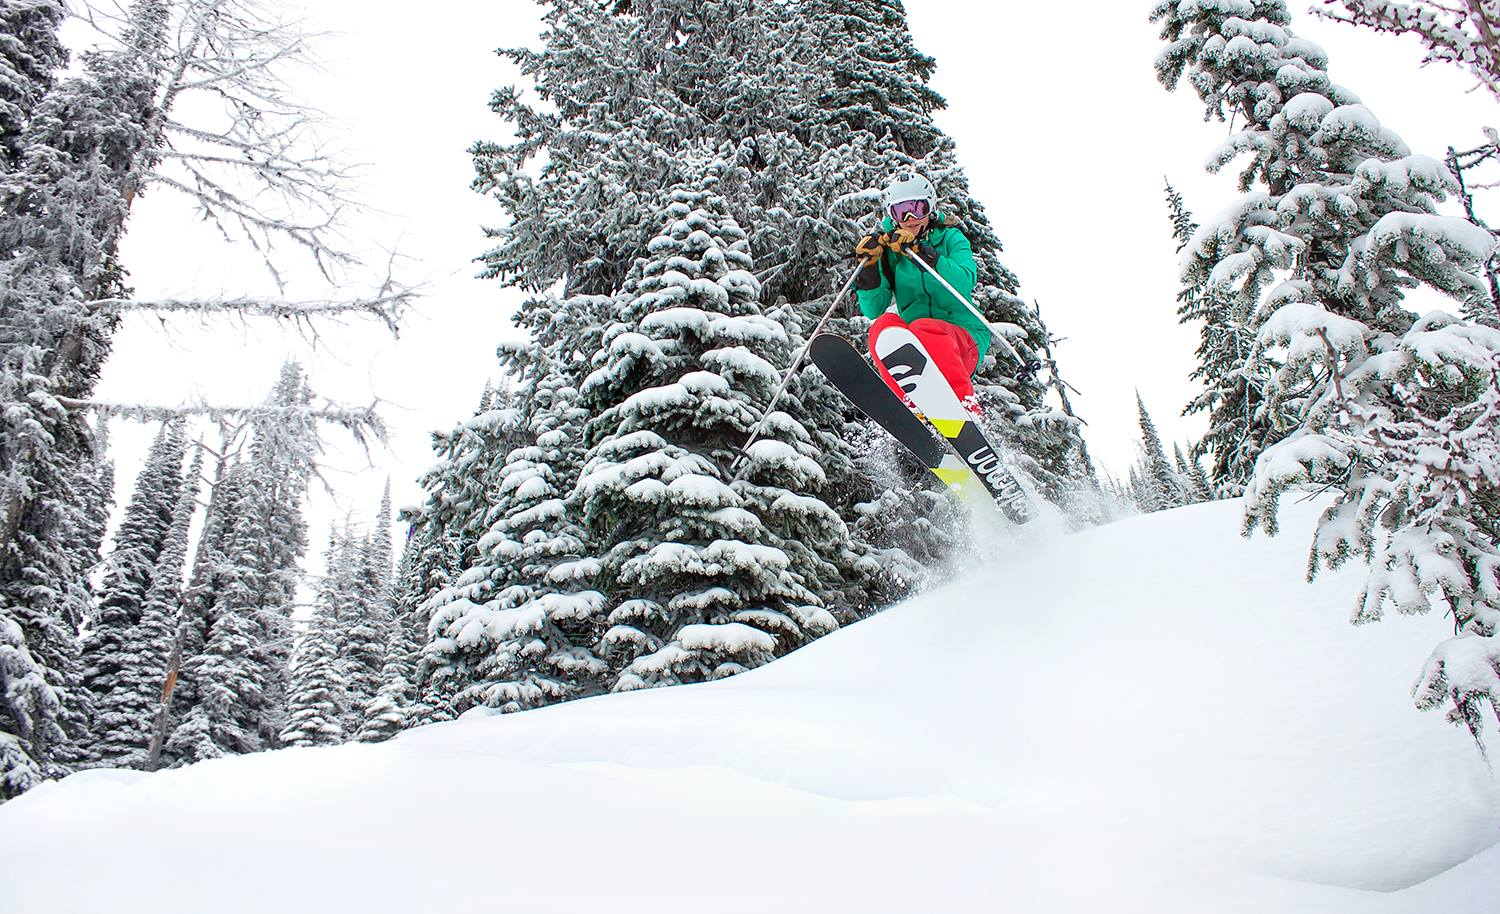 Keeping tight ski turns between the trees at Whitewater Ski Resort in Nelson. Photo: Gina Bégin